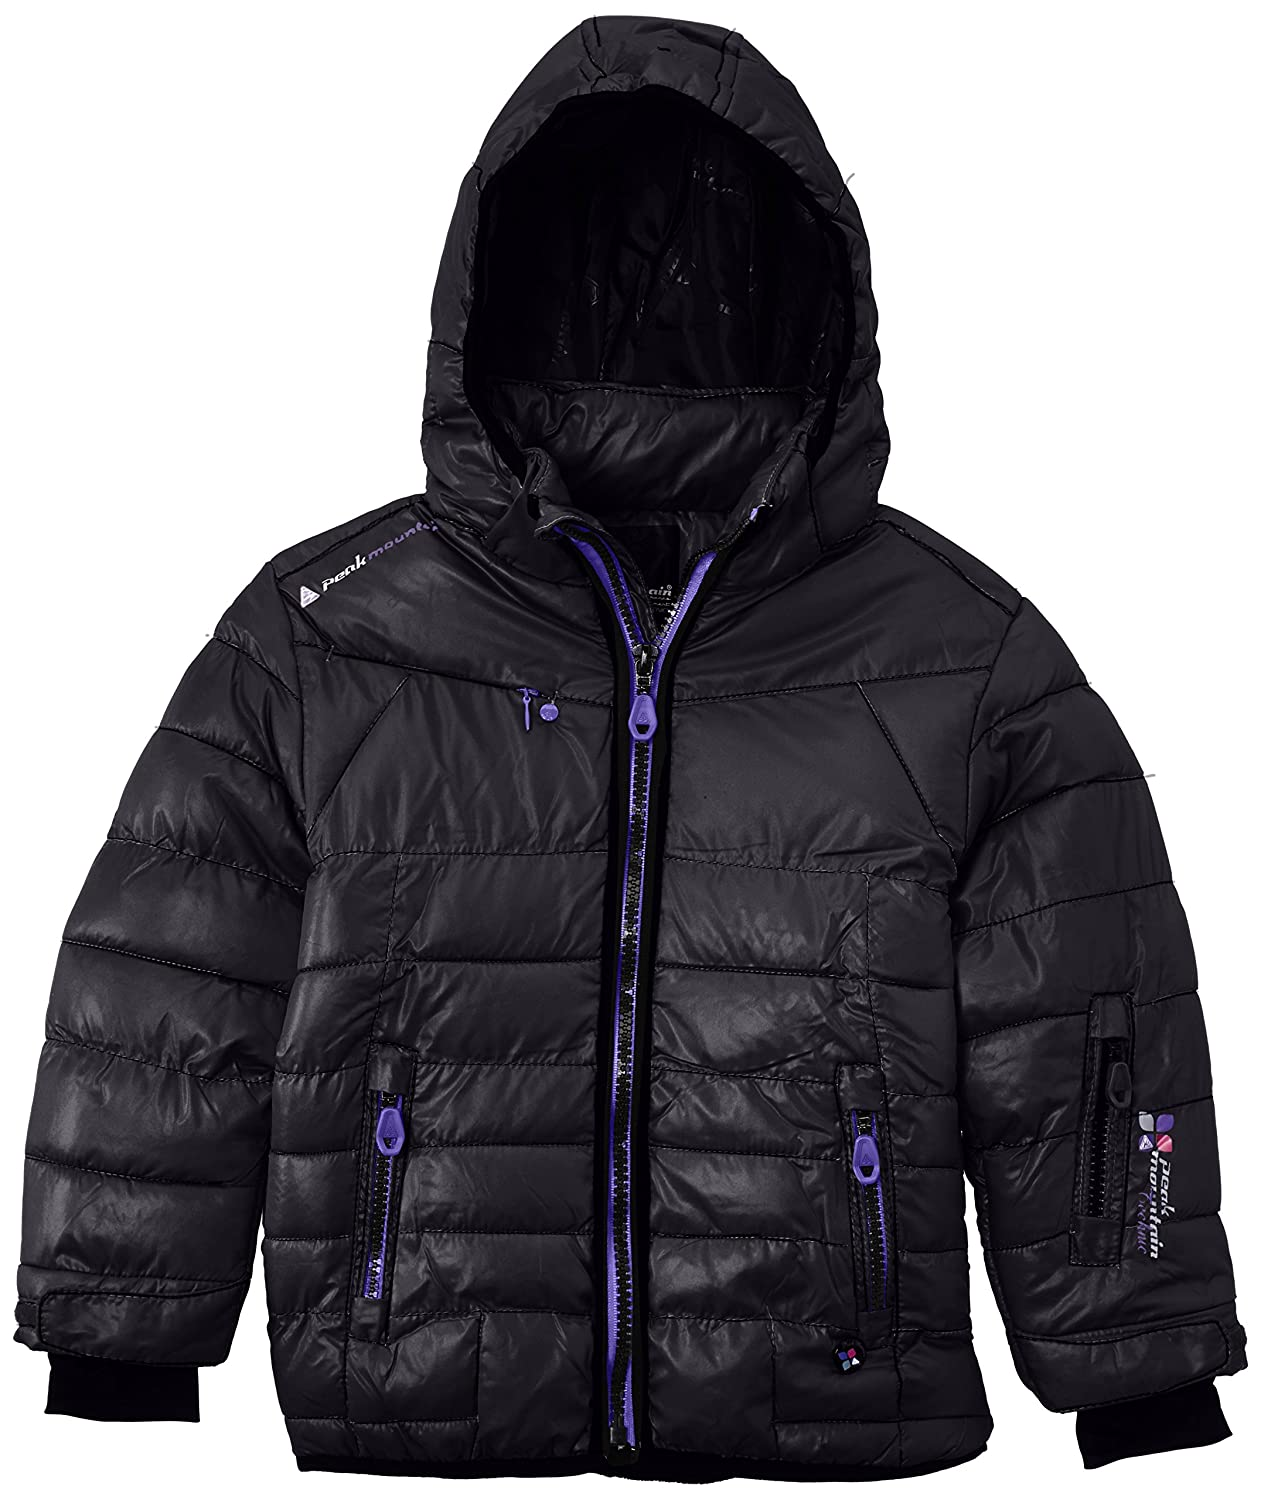 Peak Mountain Falpine/YL - Piumino da Bambina